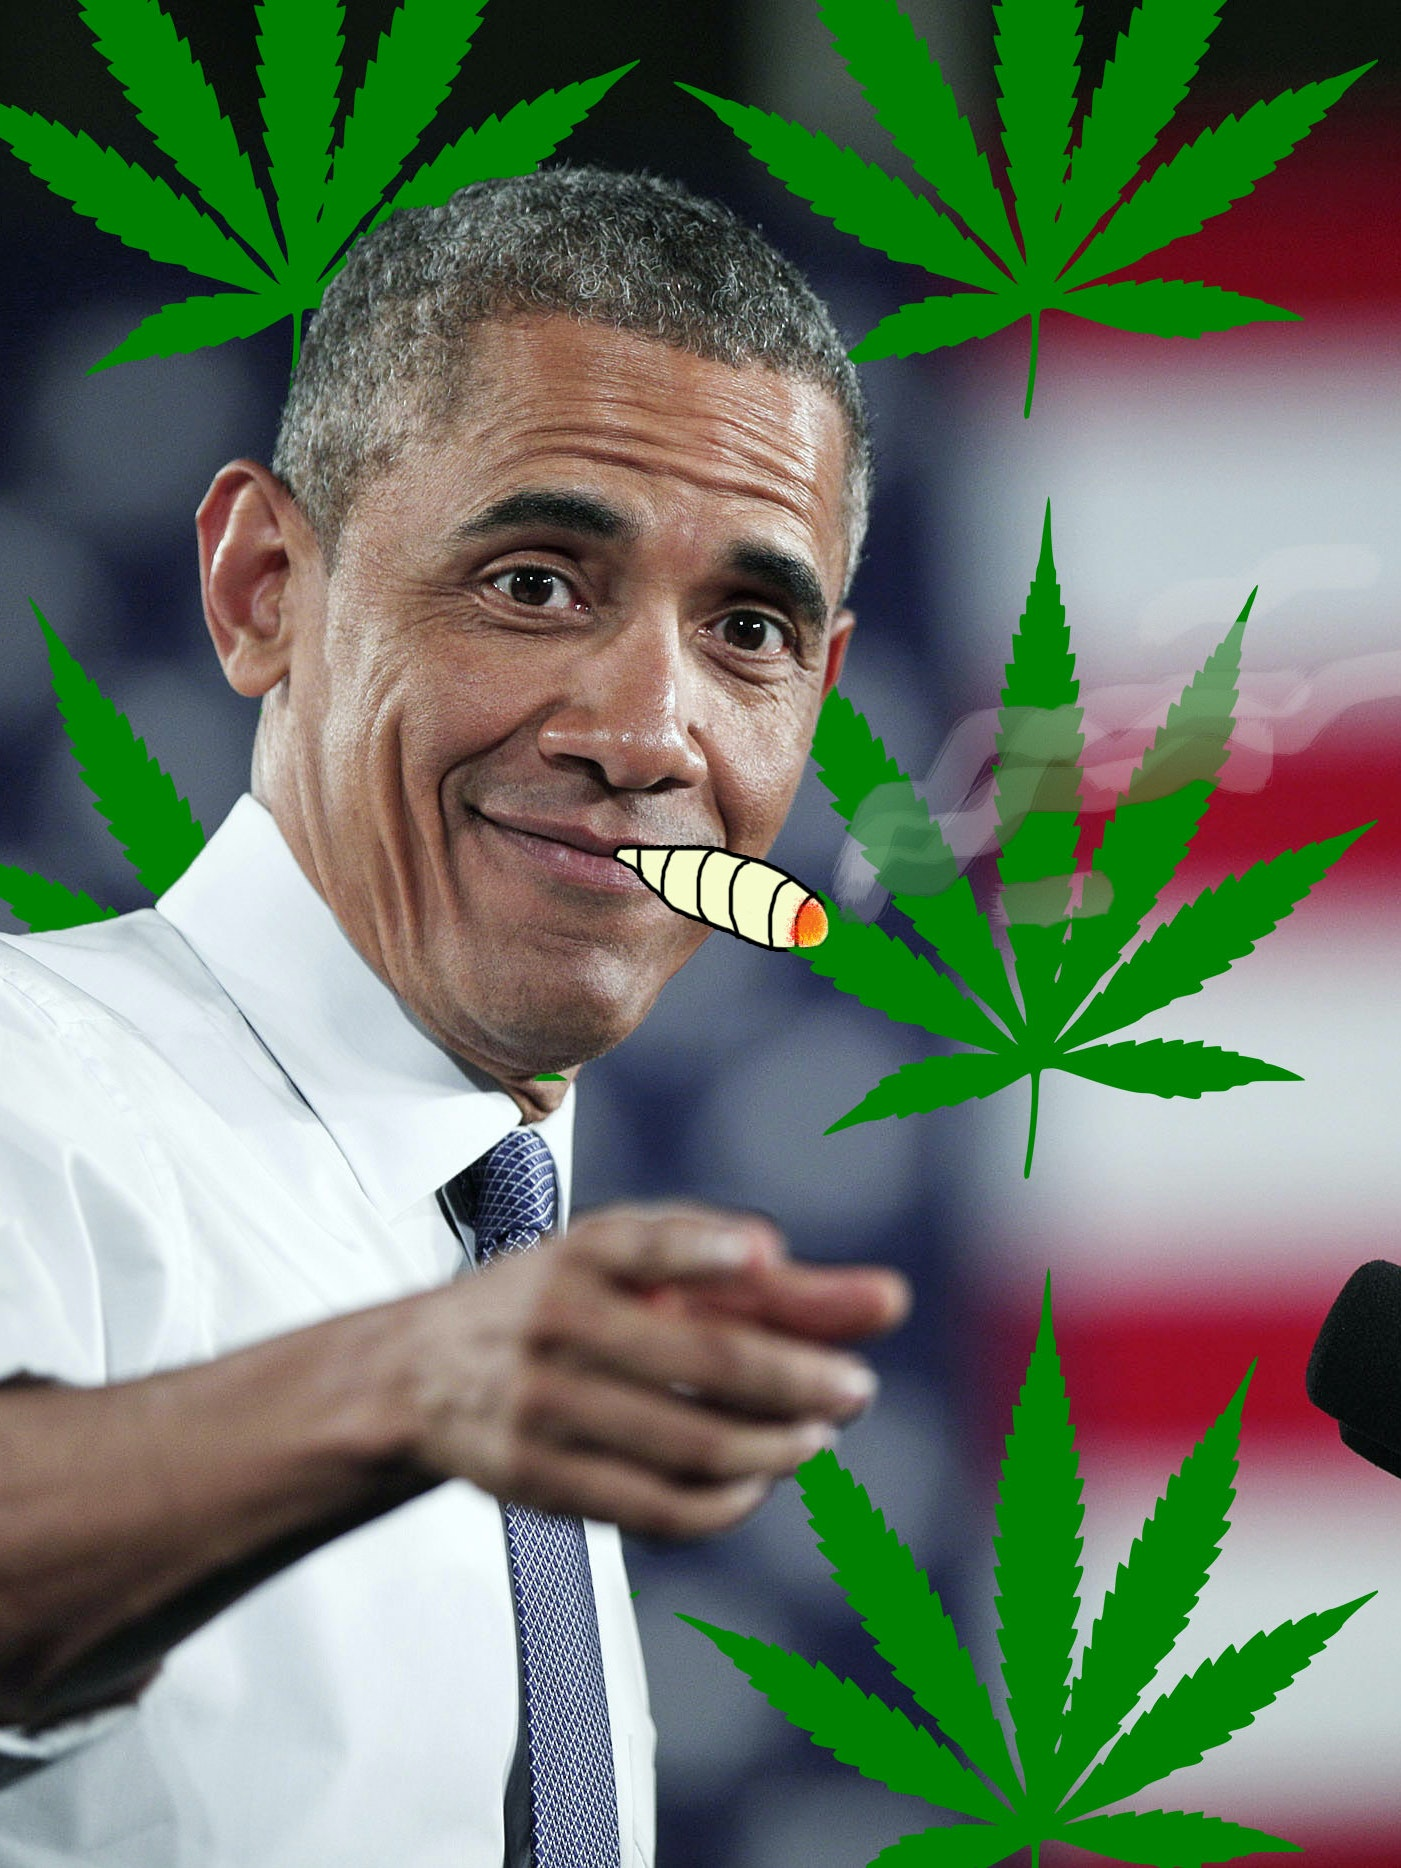 In an interview with Rolling Stone, Barack Obama voiced his support for cannabis legalization, saying the drug should be treated in the same way as alcohol and cigarettes.